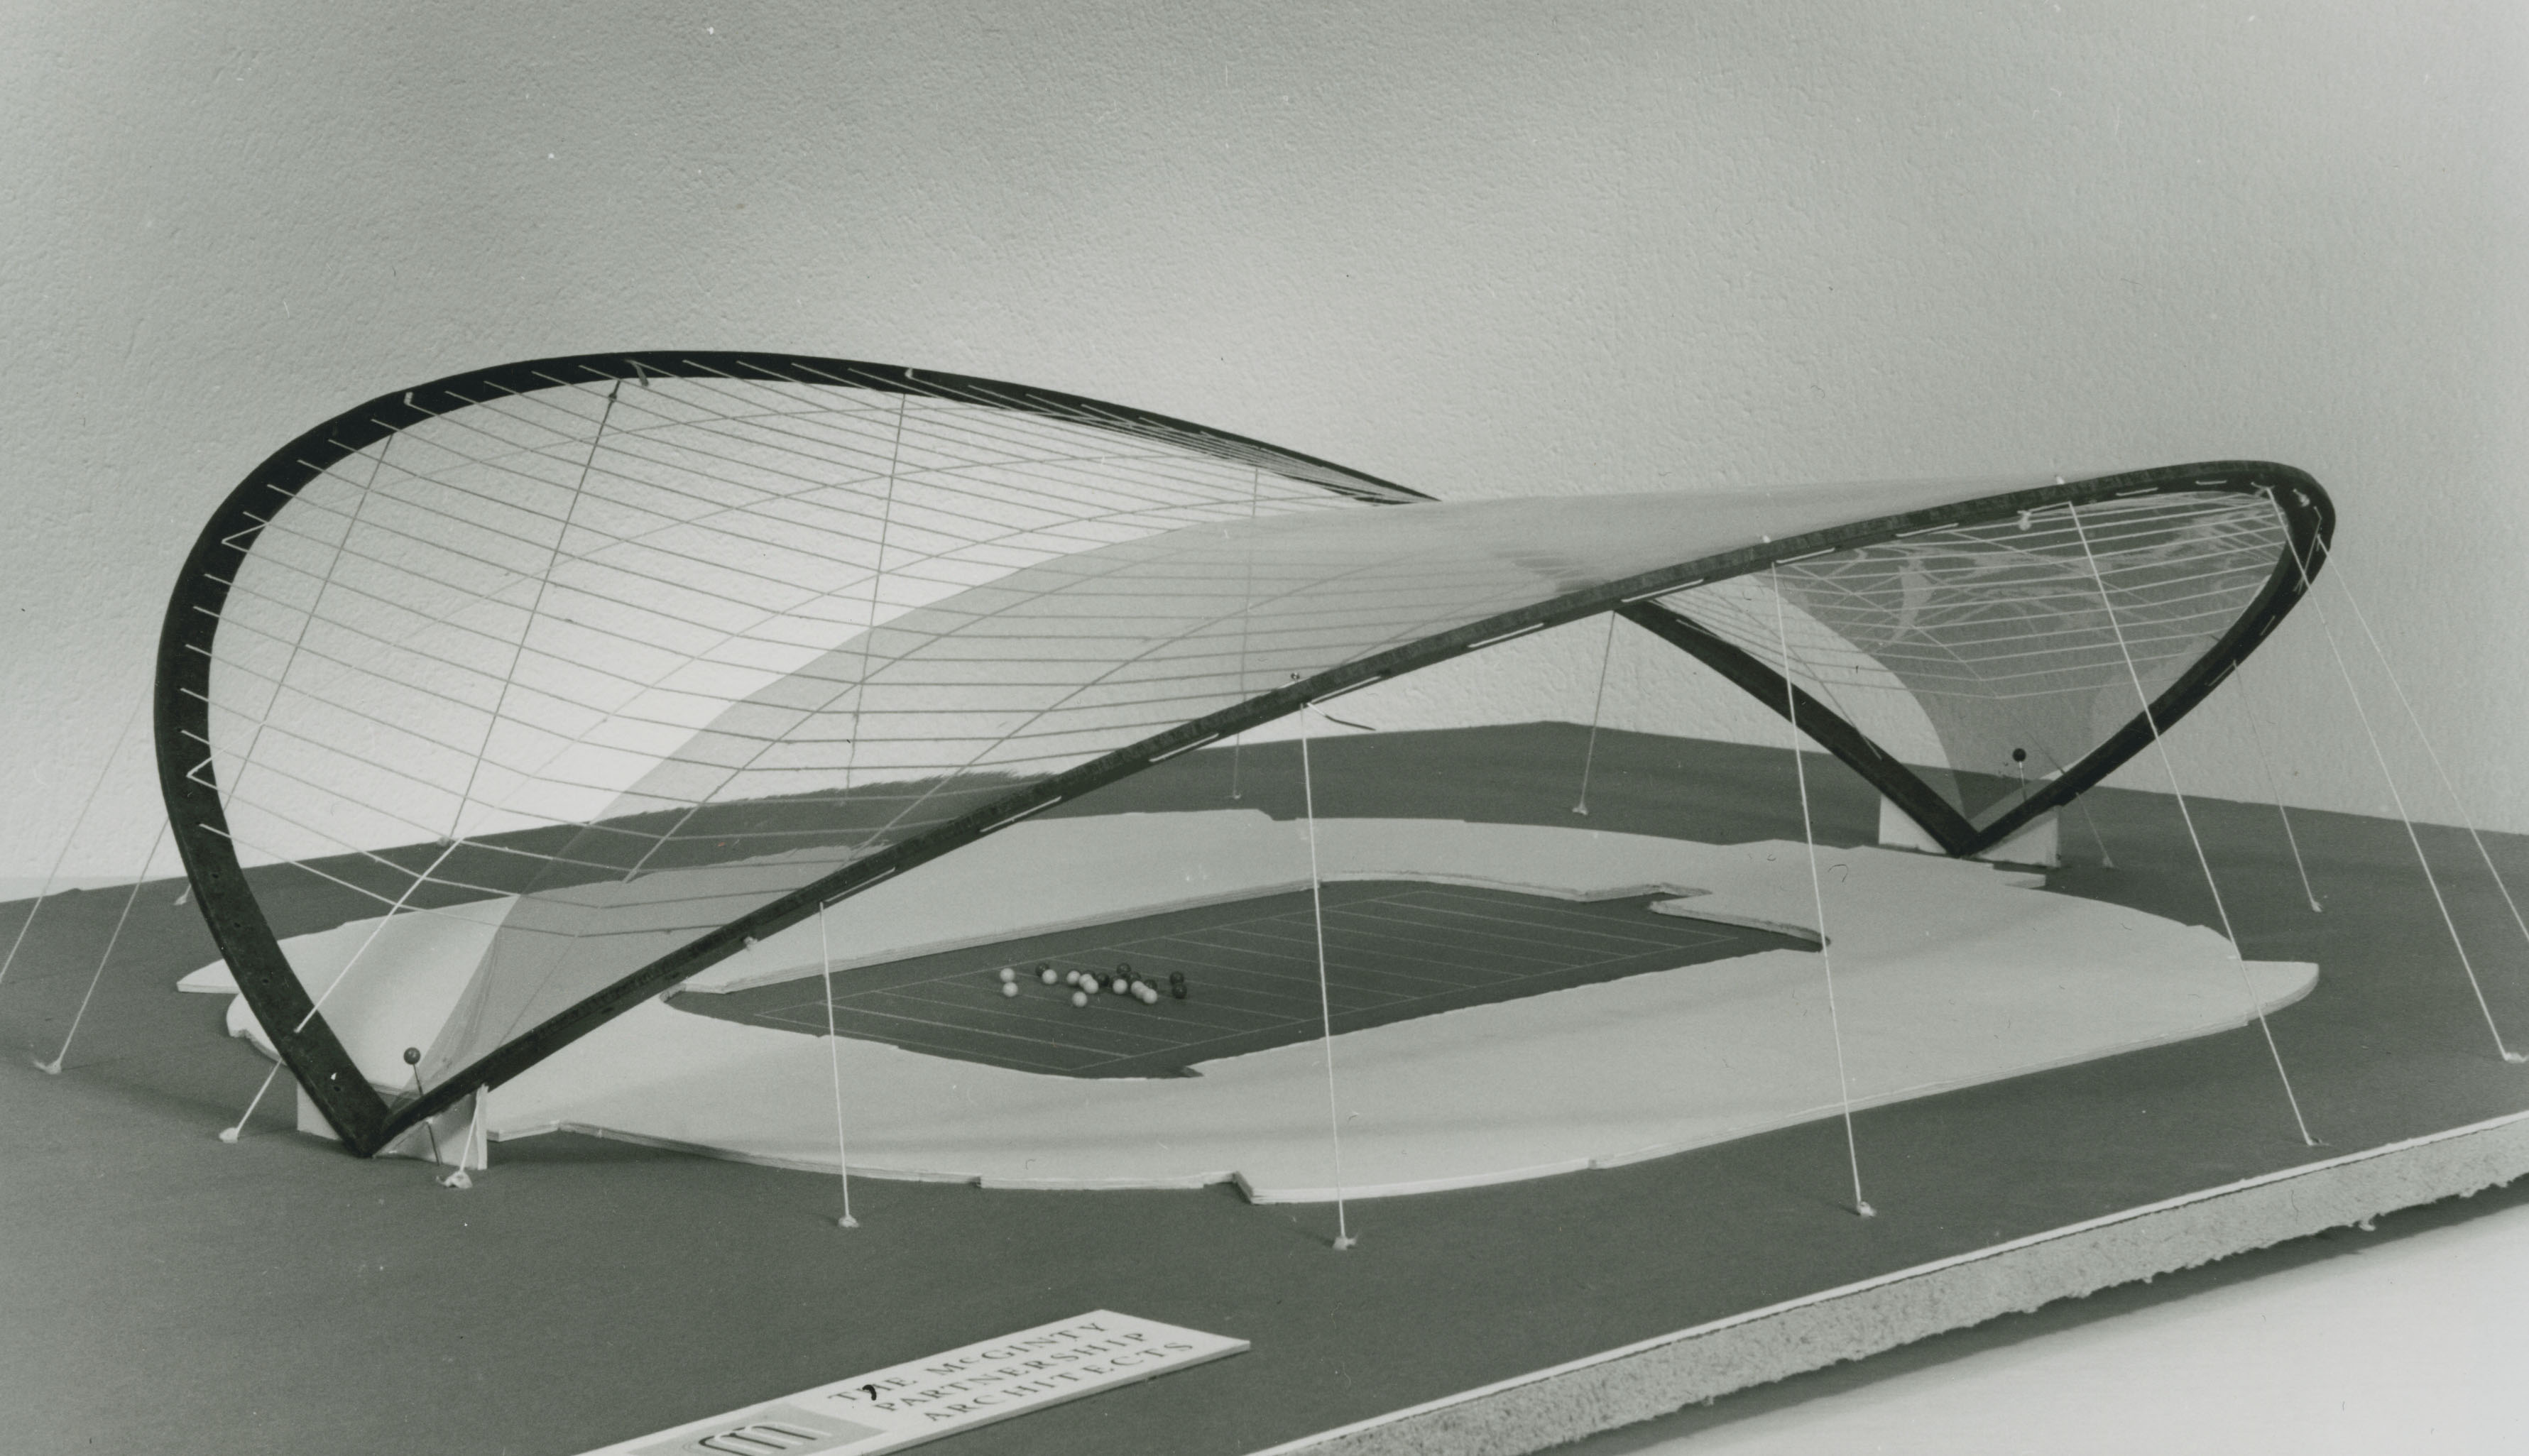 1000 Images About Stadium Roofs With Membranes On Pinterest